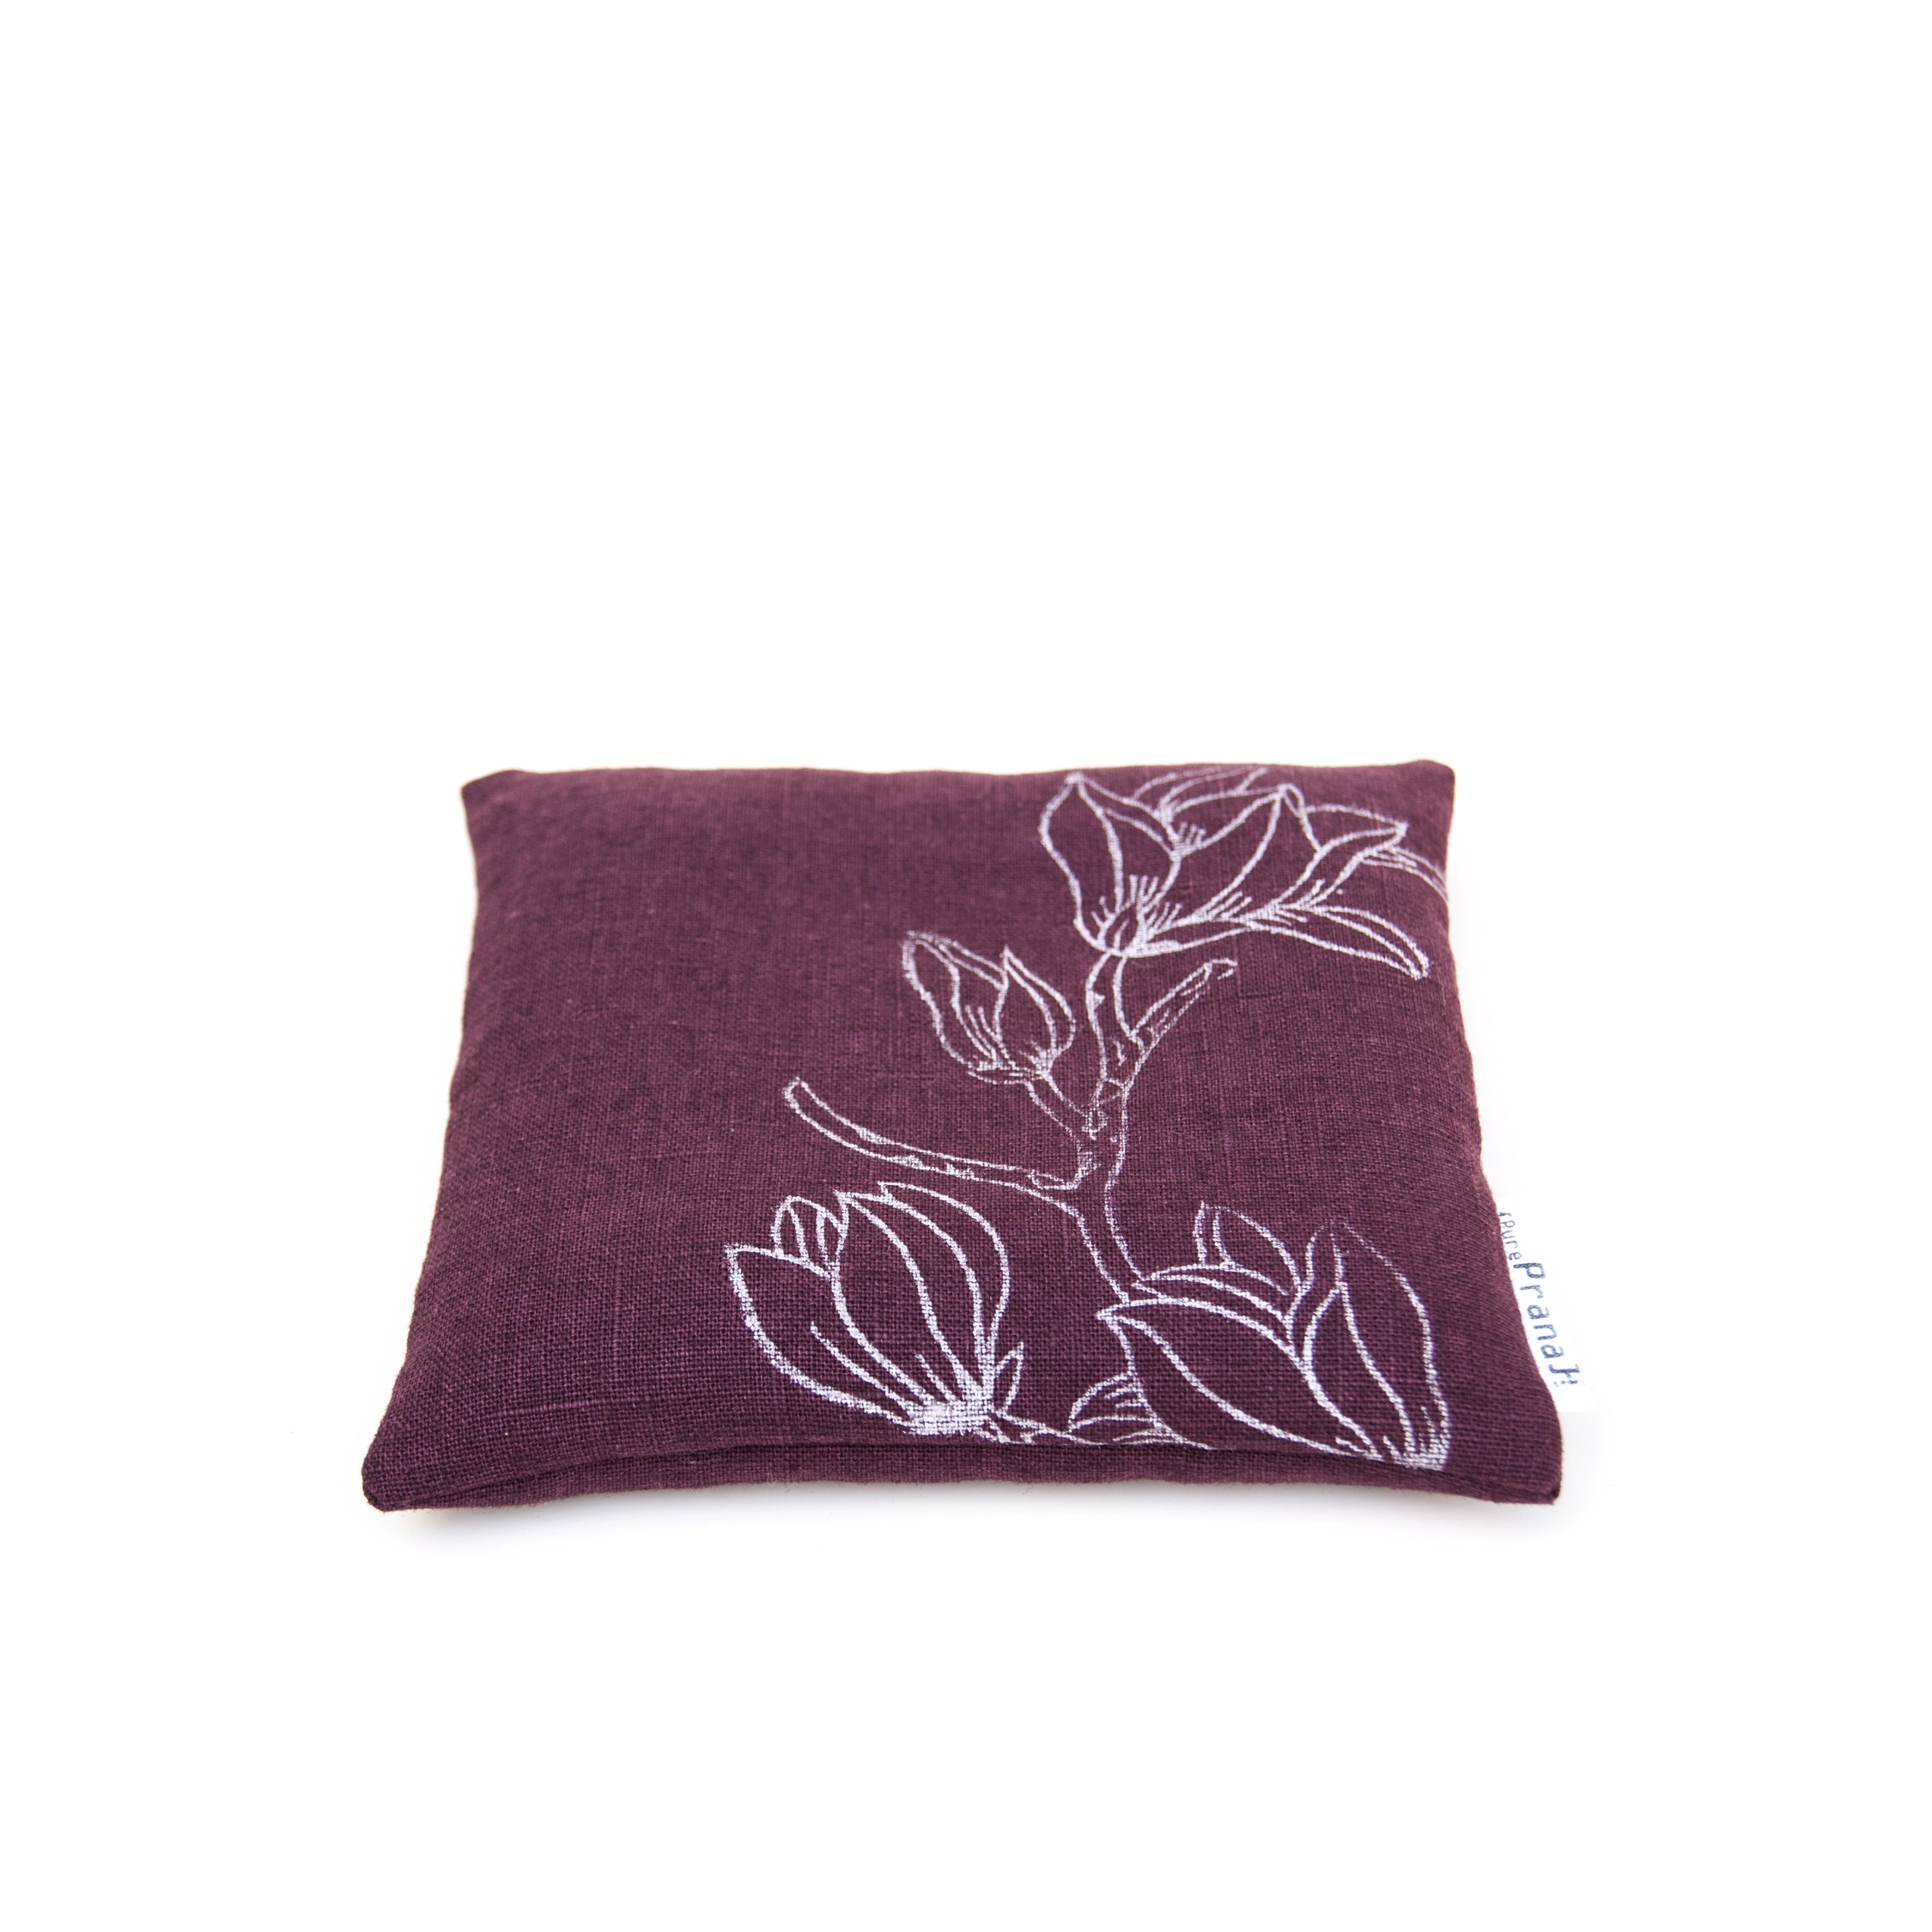 Singing bowl cushion Magnolia